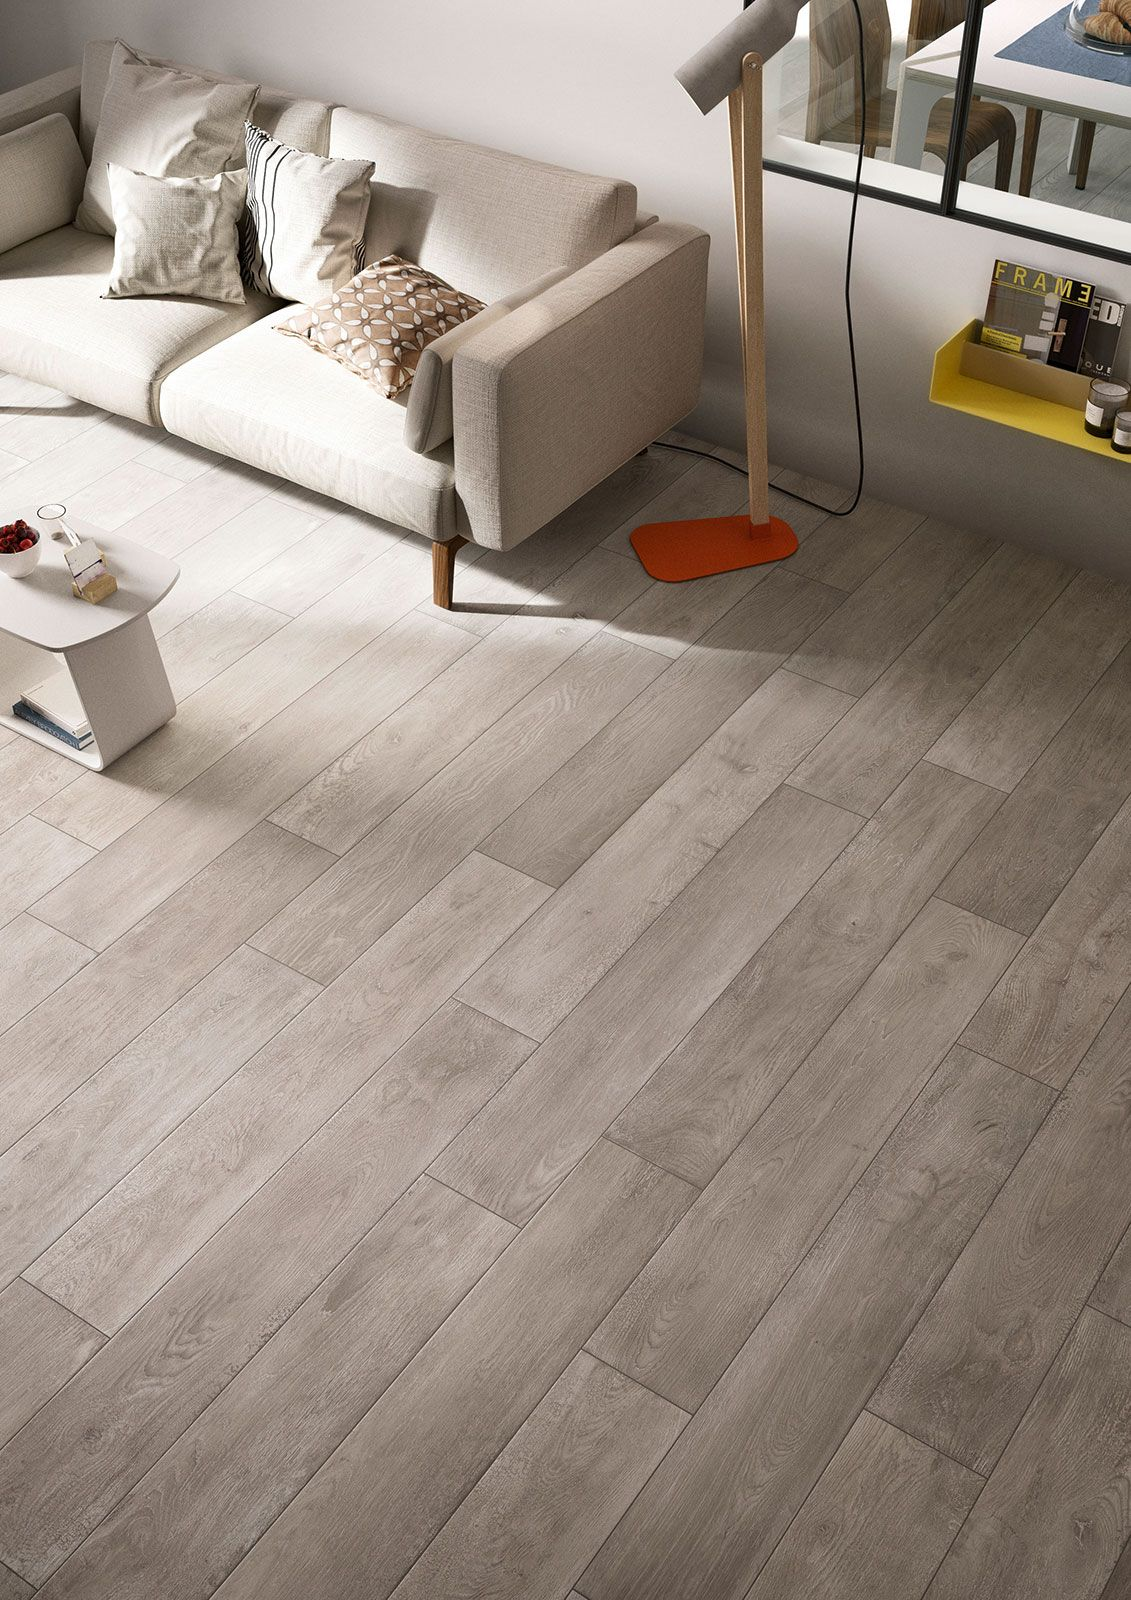 Beautiful Treverktime ceramic tiles Marazzi_6535 | Flooring | Pinterest  KQ82